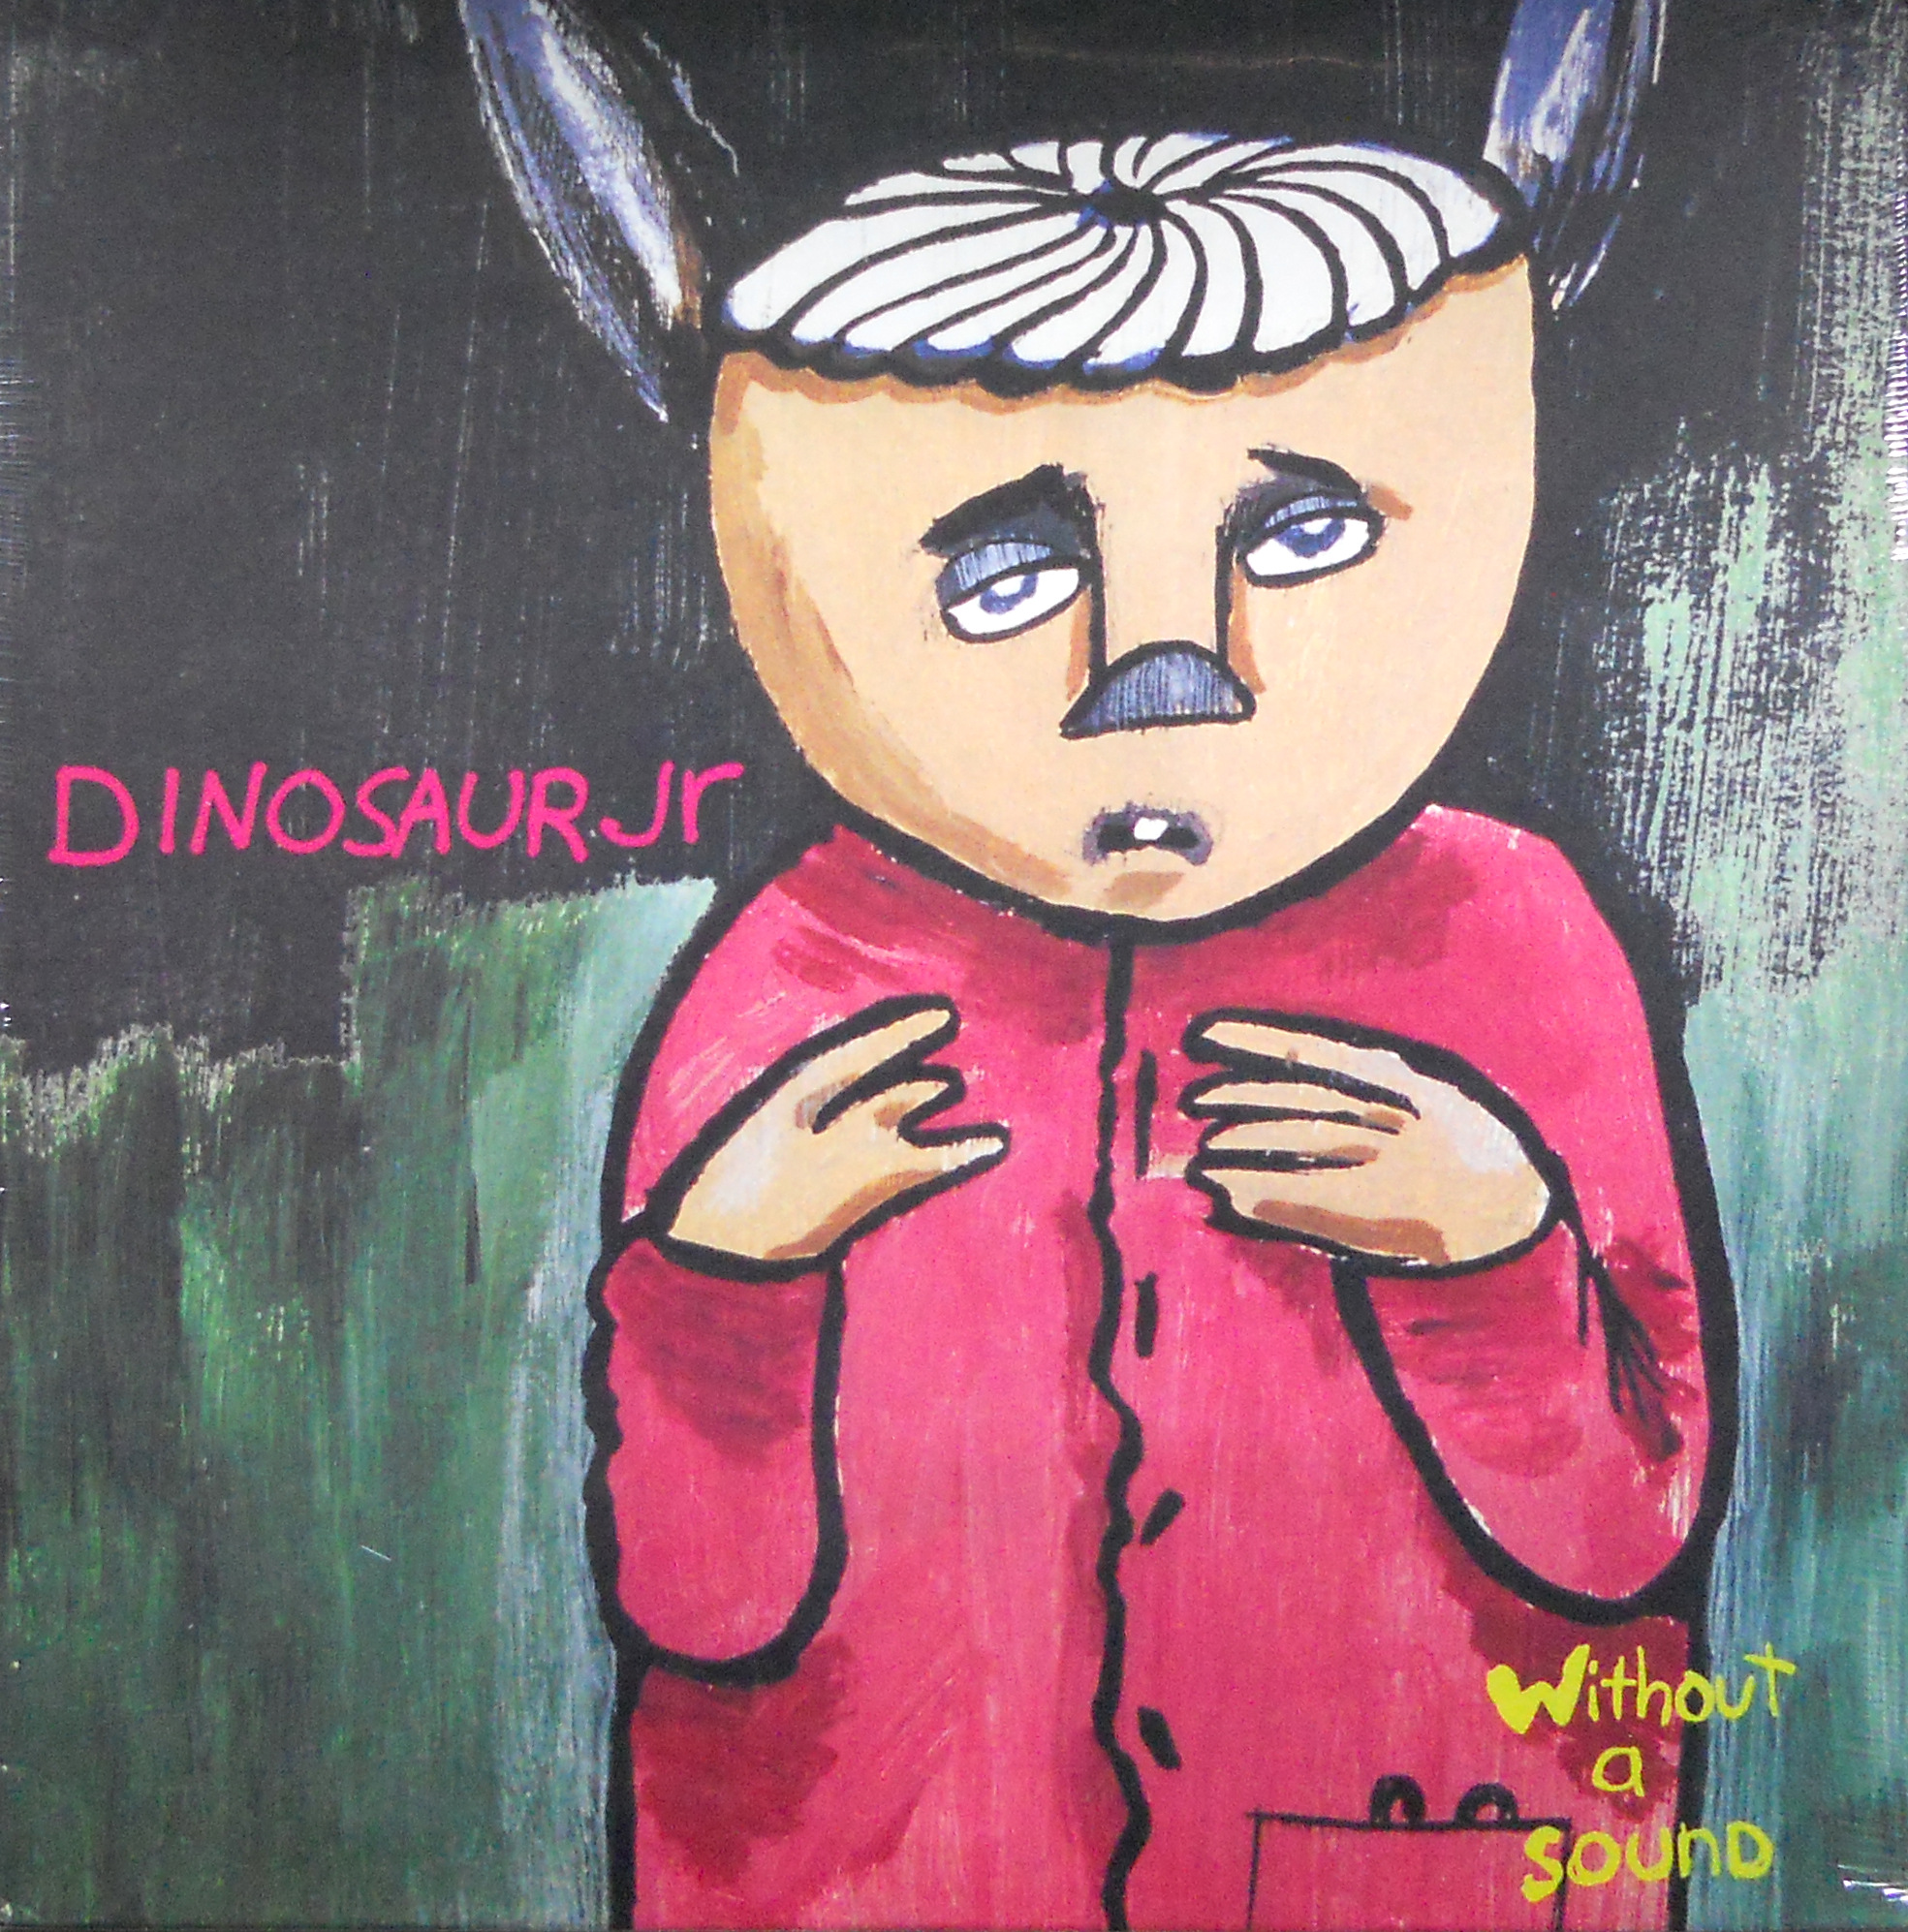 Unexplained Music Mystery: Dinosaur Jr. Track Goes Top 20 In Japan